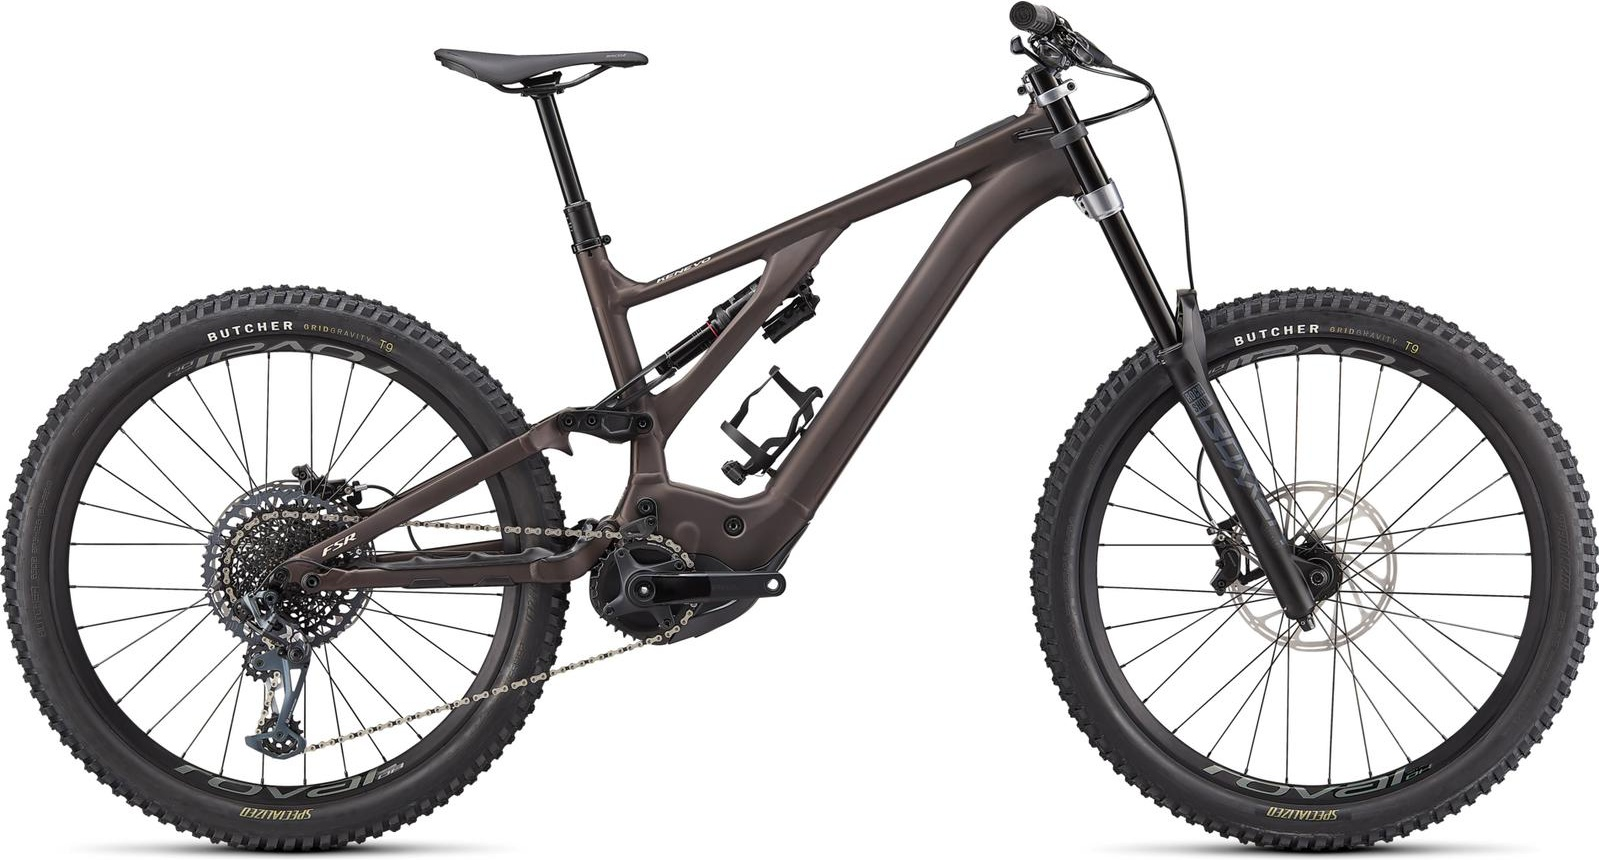 RS-DELUXE NUDE-B1 | RS-DLX-NUDE-B1 | RockShox